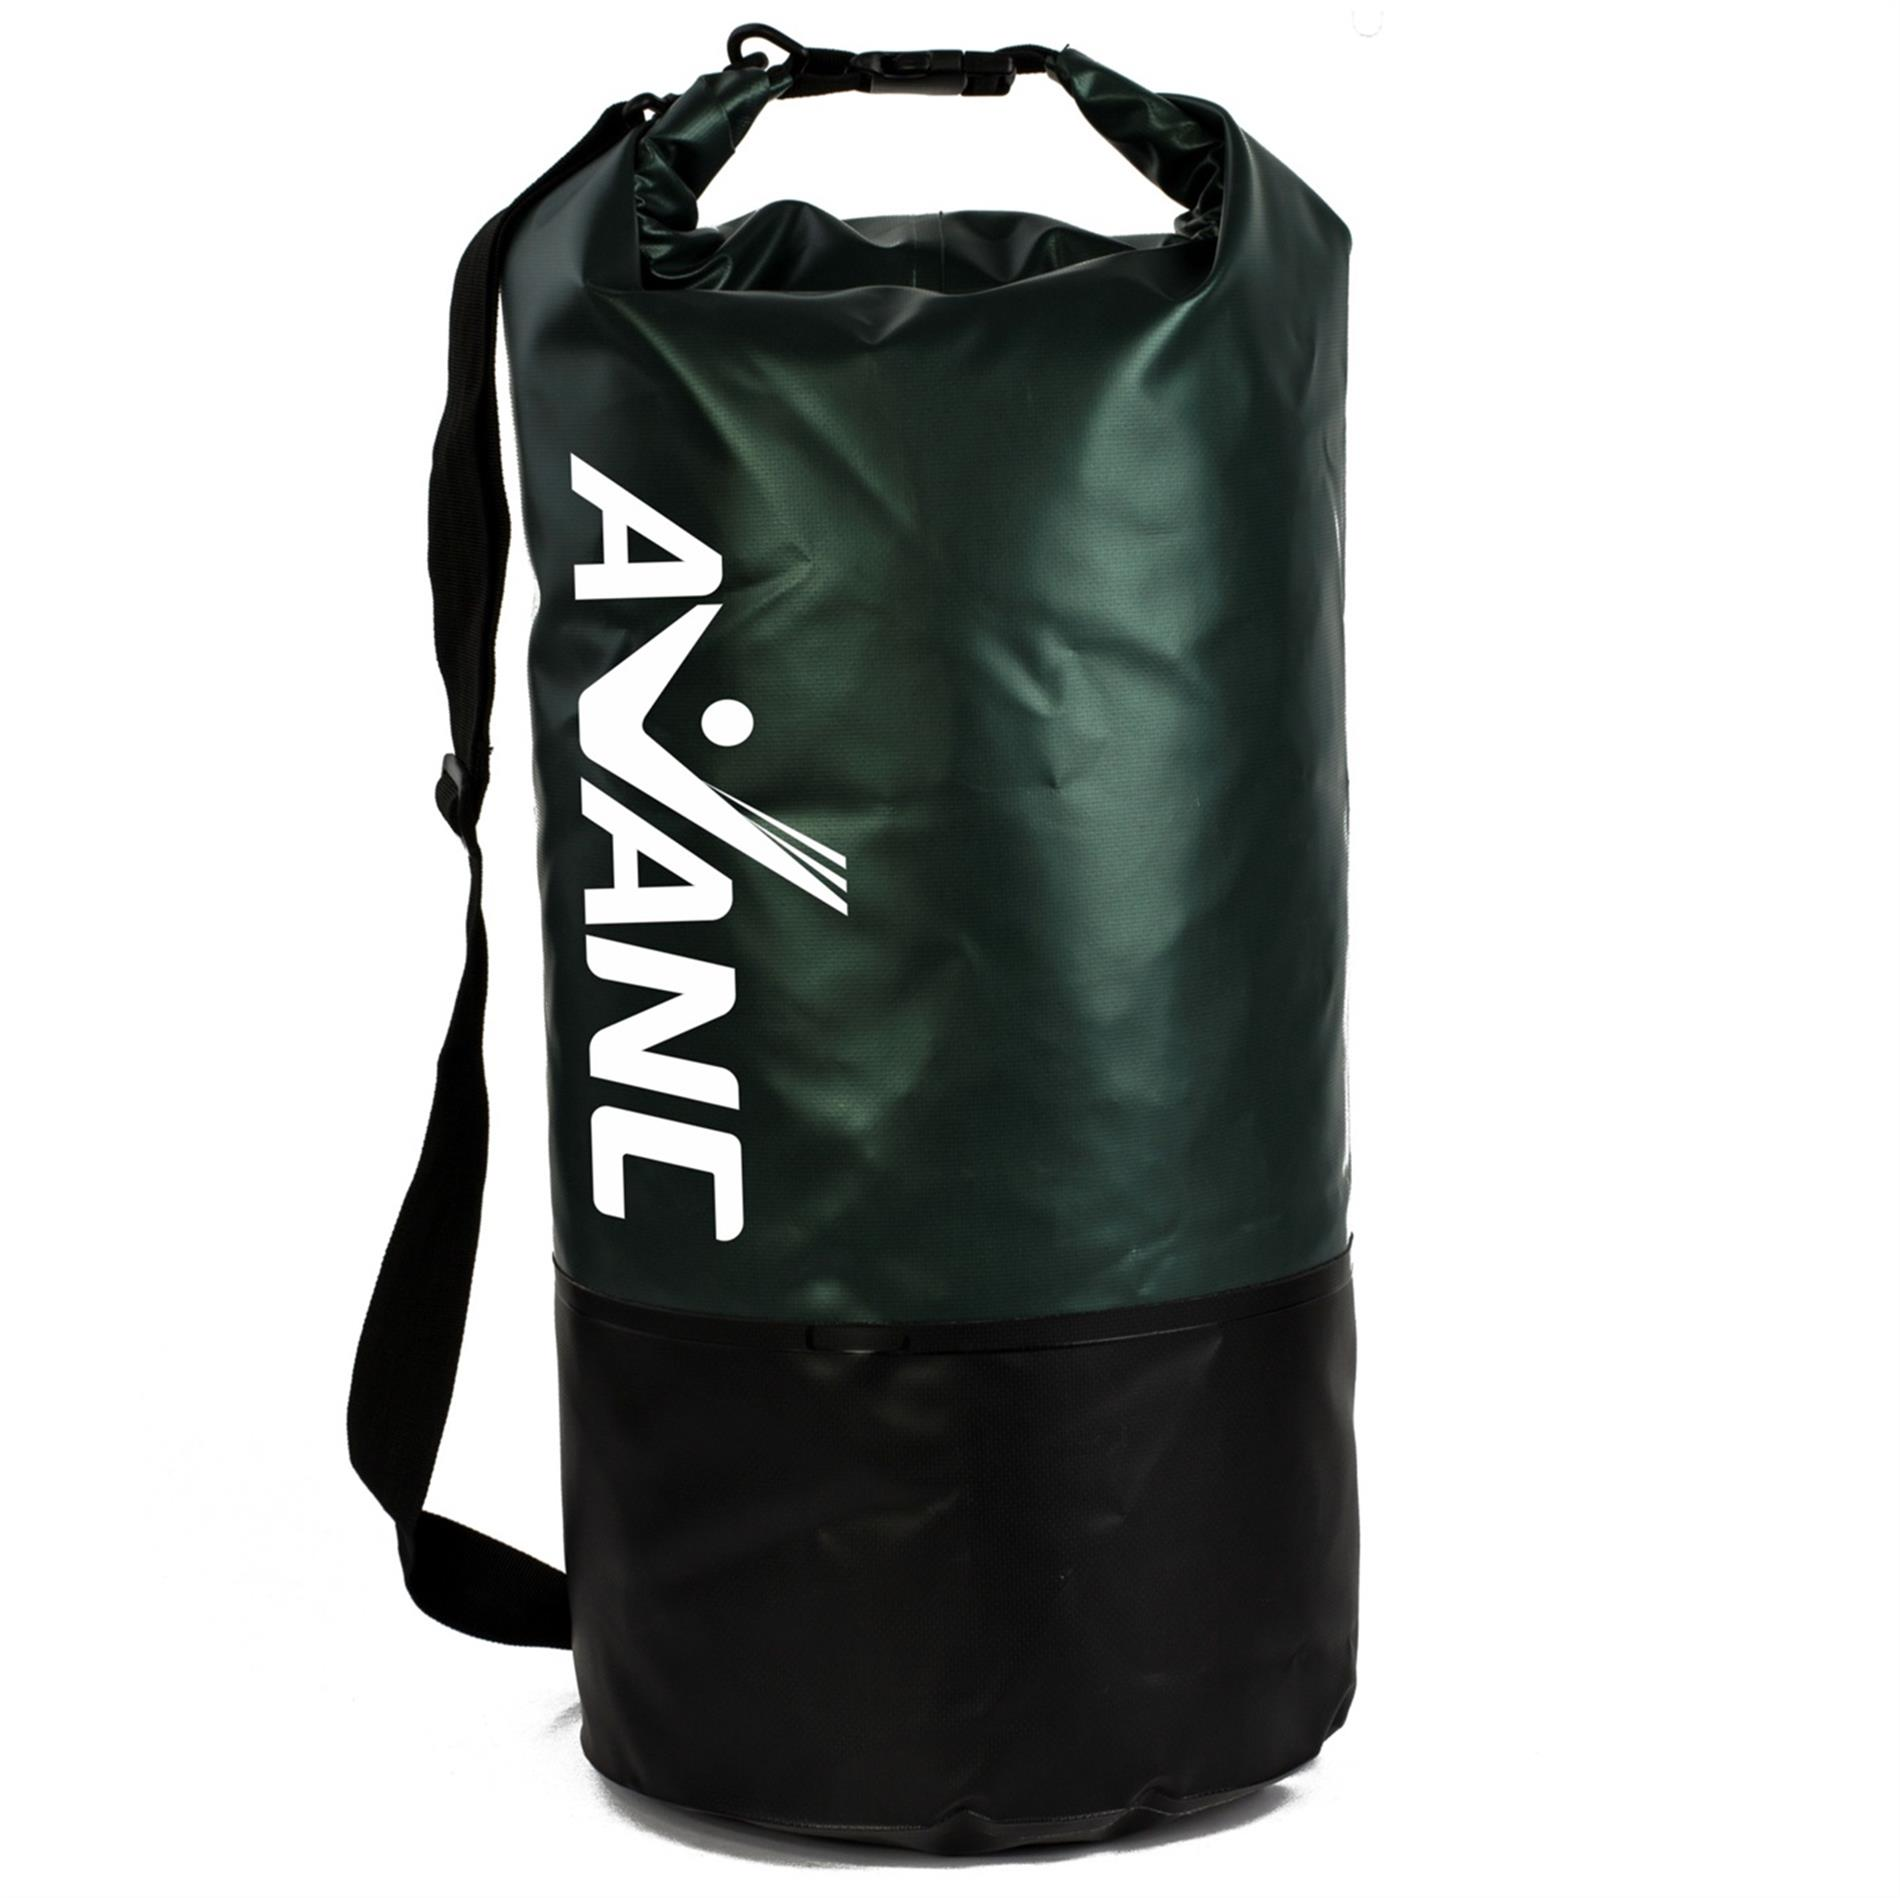 Waterproof Dry Bag Dry Sack Roll Top Dry Compression Sack Keeps Gear Dry 40L